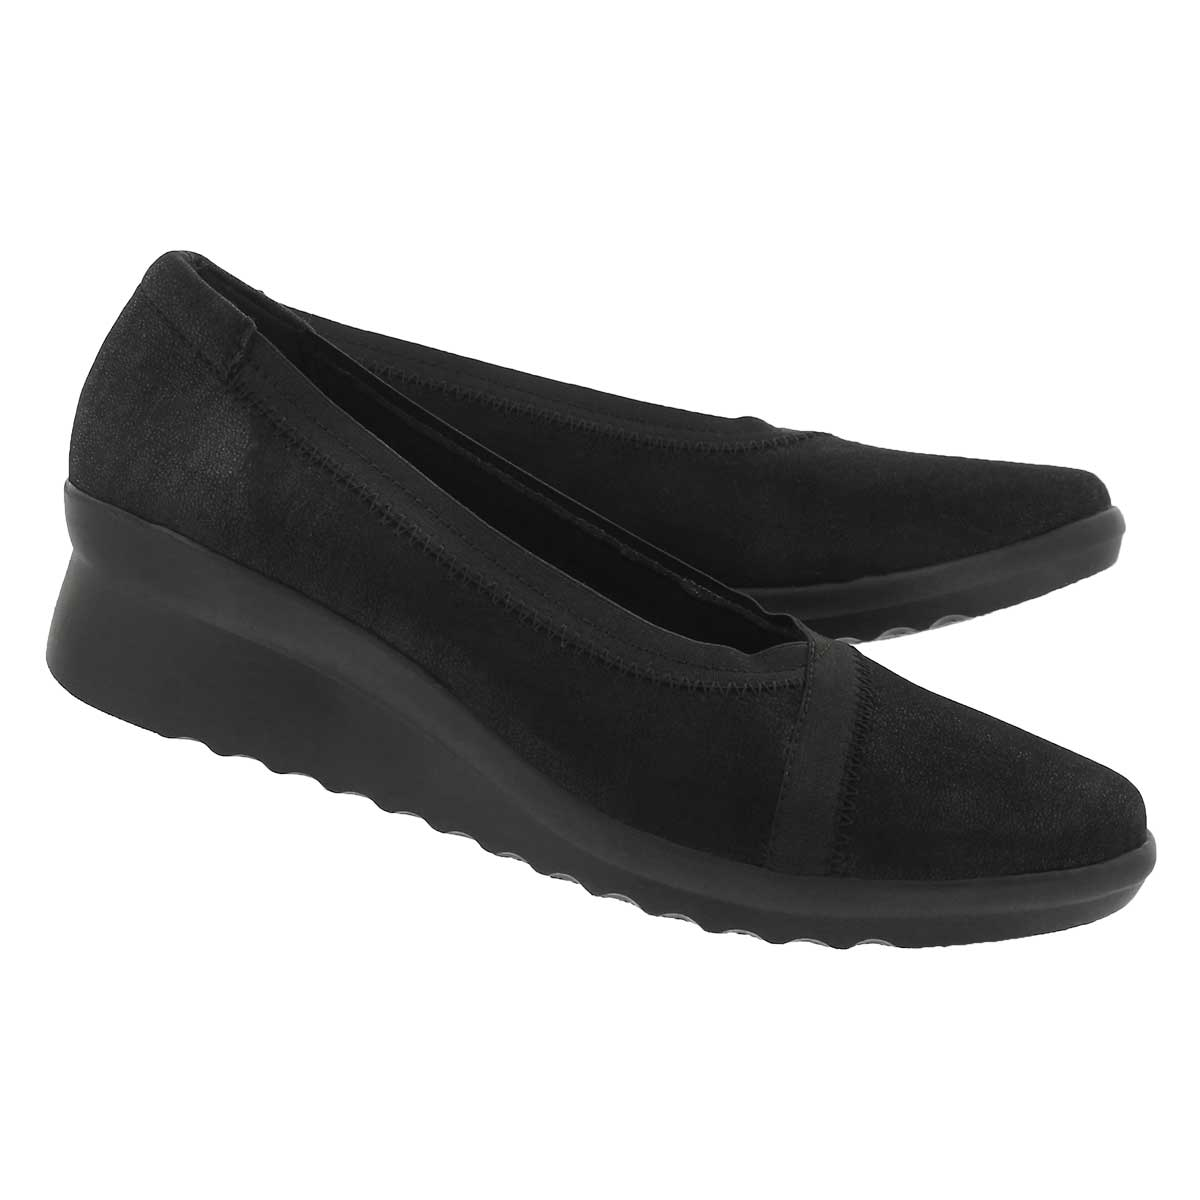 Lds Caddell Dash black wedge slip on